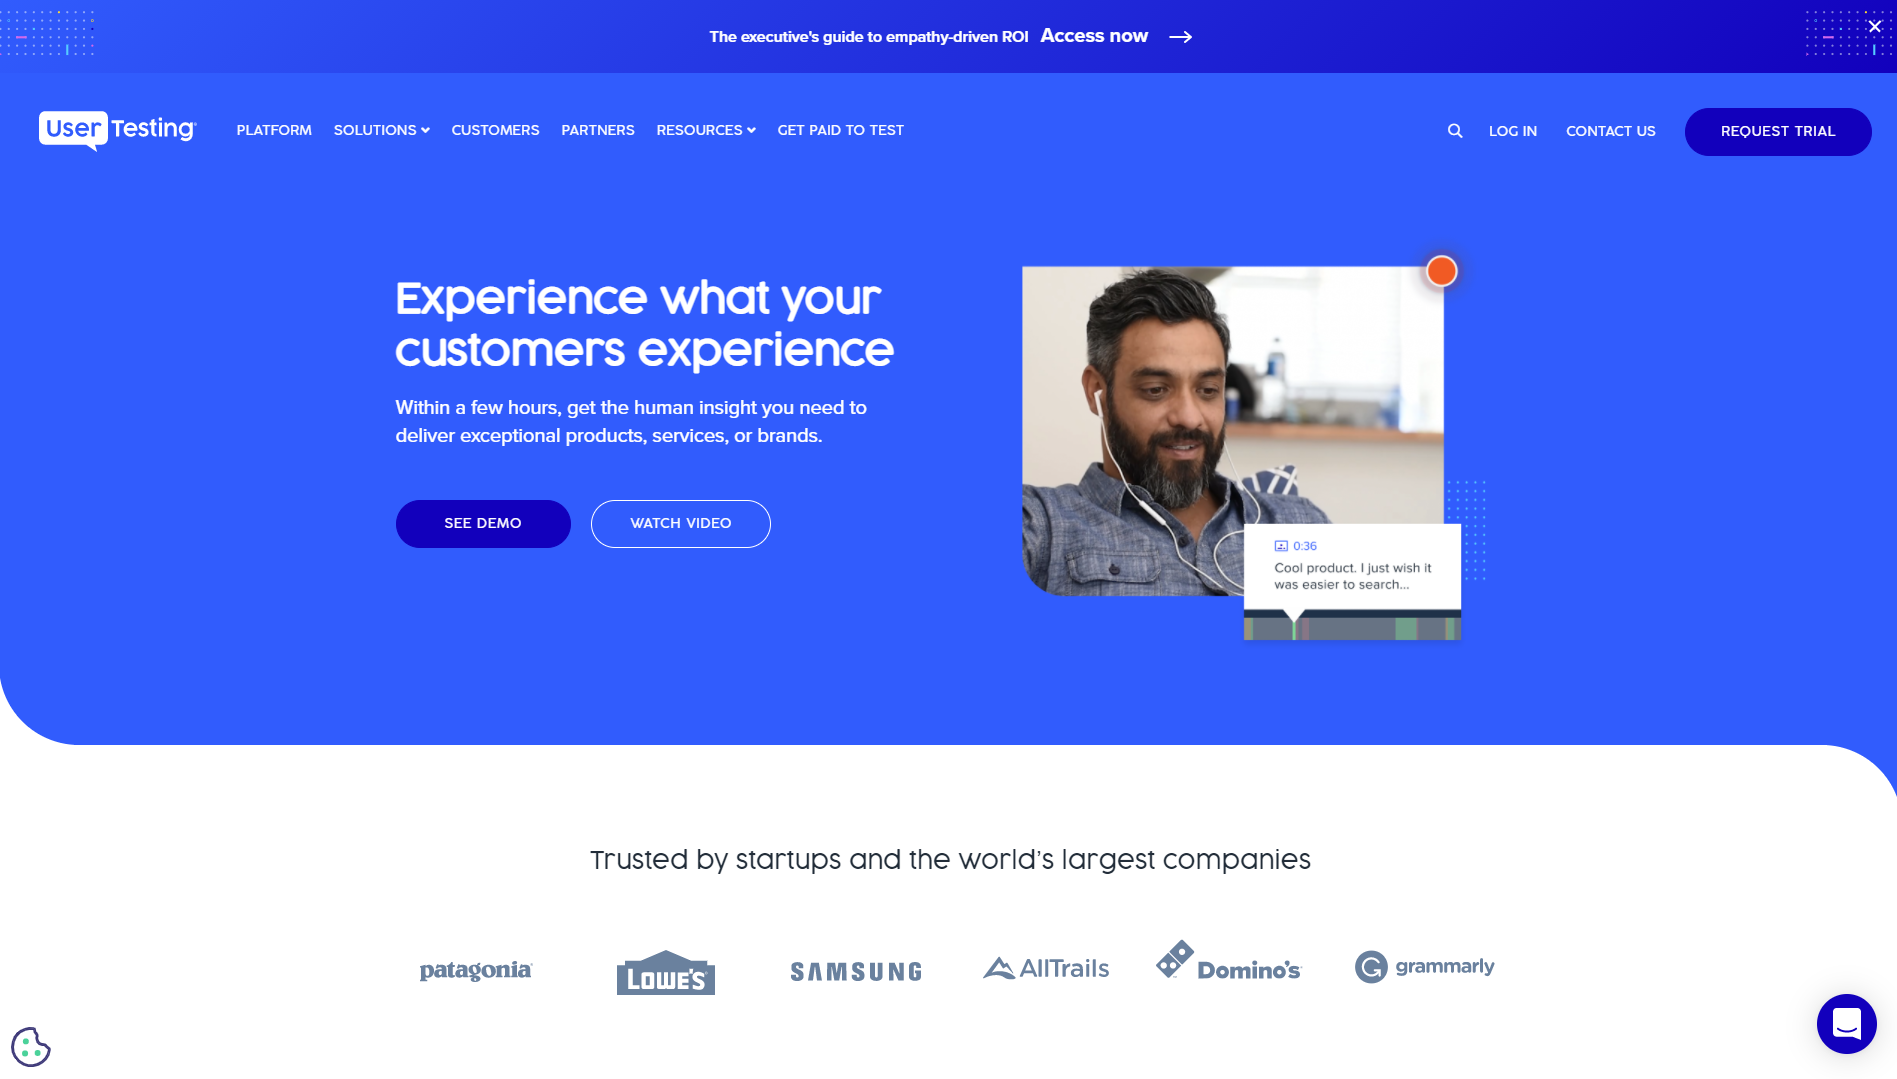 """UserTesting homepage with text that reads """"Experience what your customers experience. Within a few hours, get the human insight you need to deliver exceptional products, services, or brands."""" There is a button that says """"see demo"""" and one that says """"watch video"""" beside an image of a man testing a product and providing feedback."""